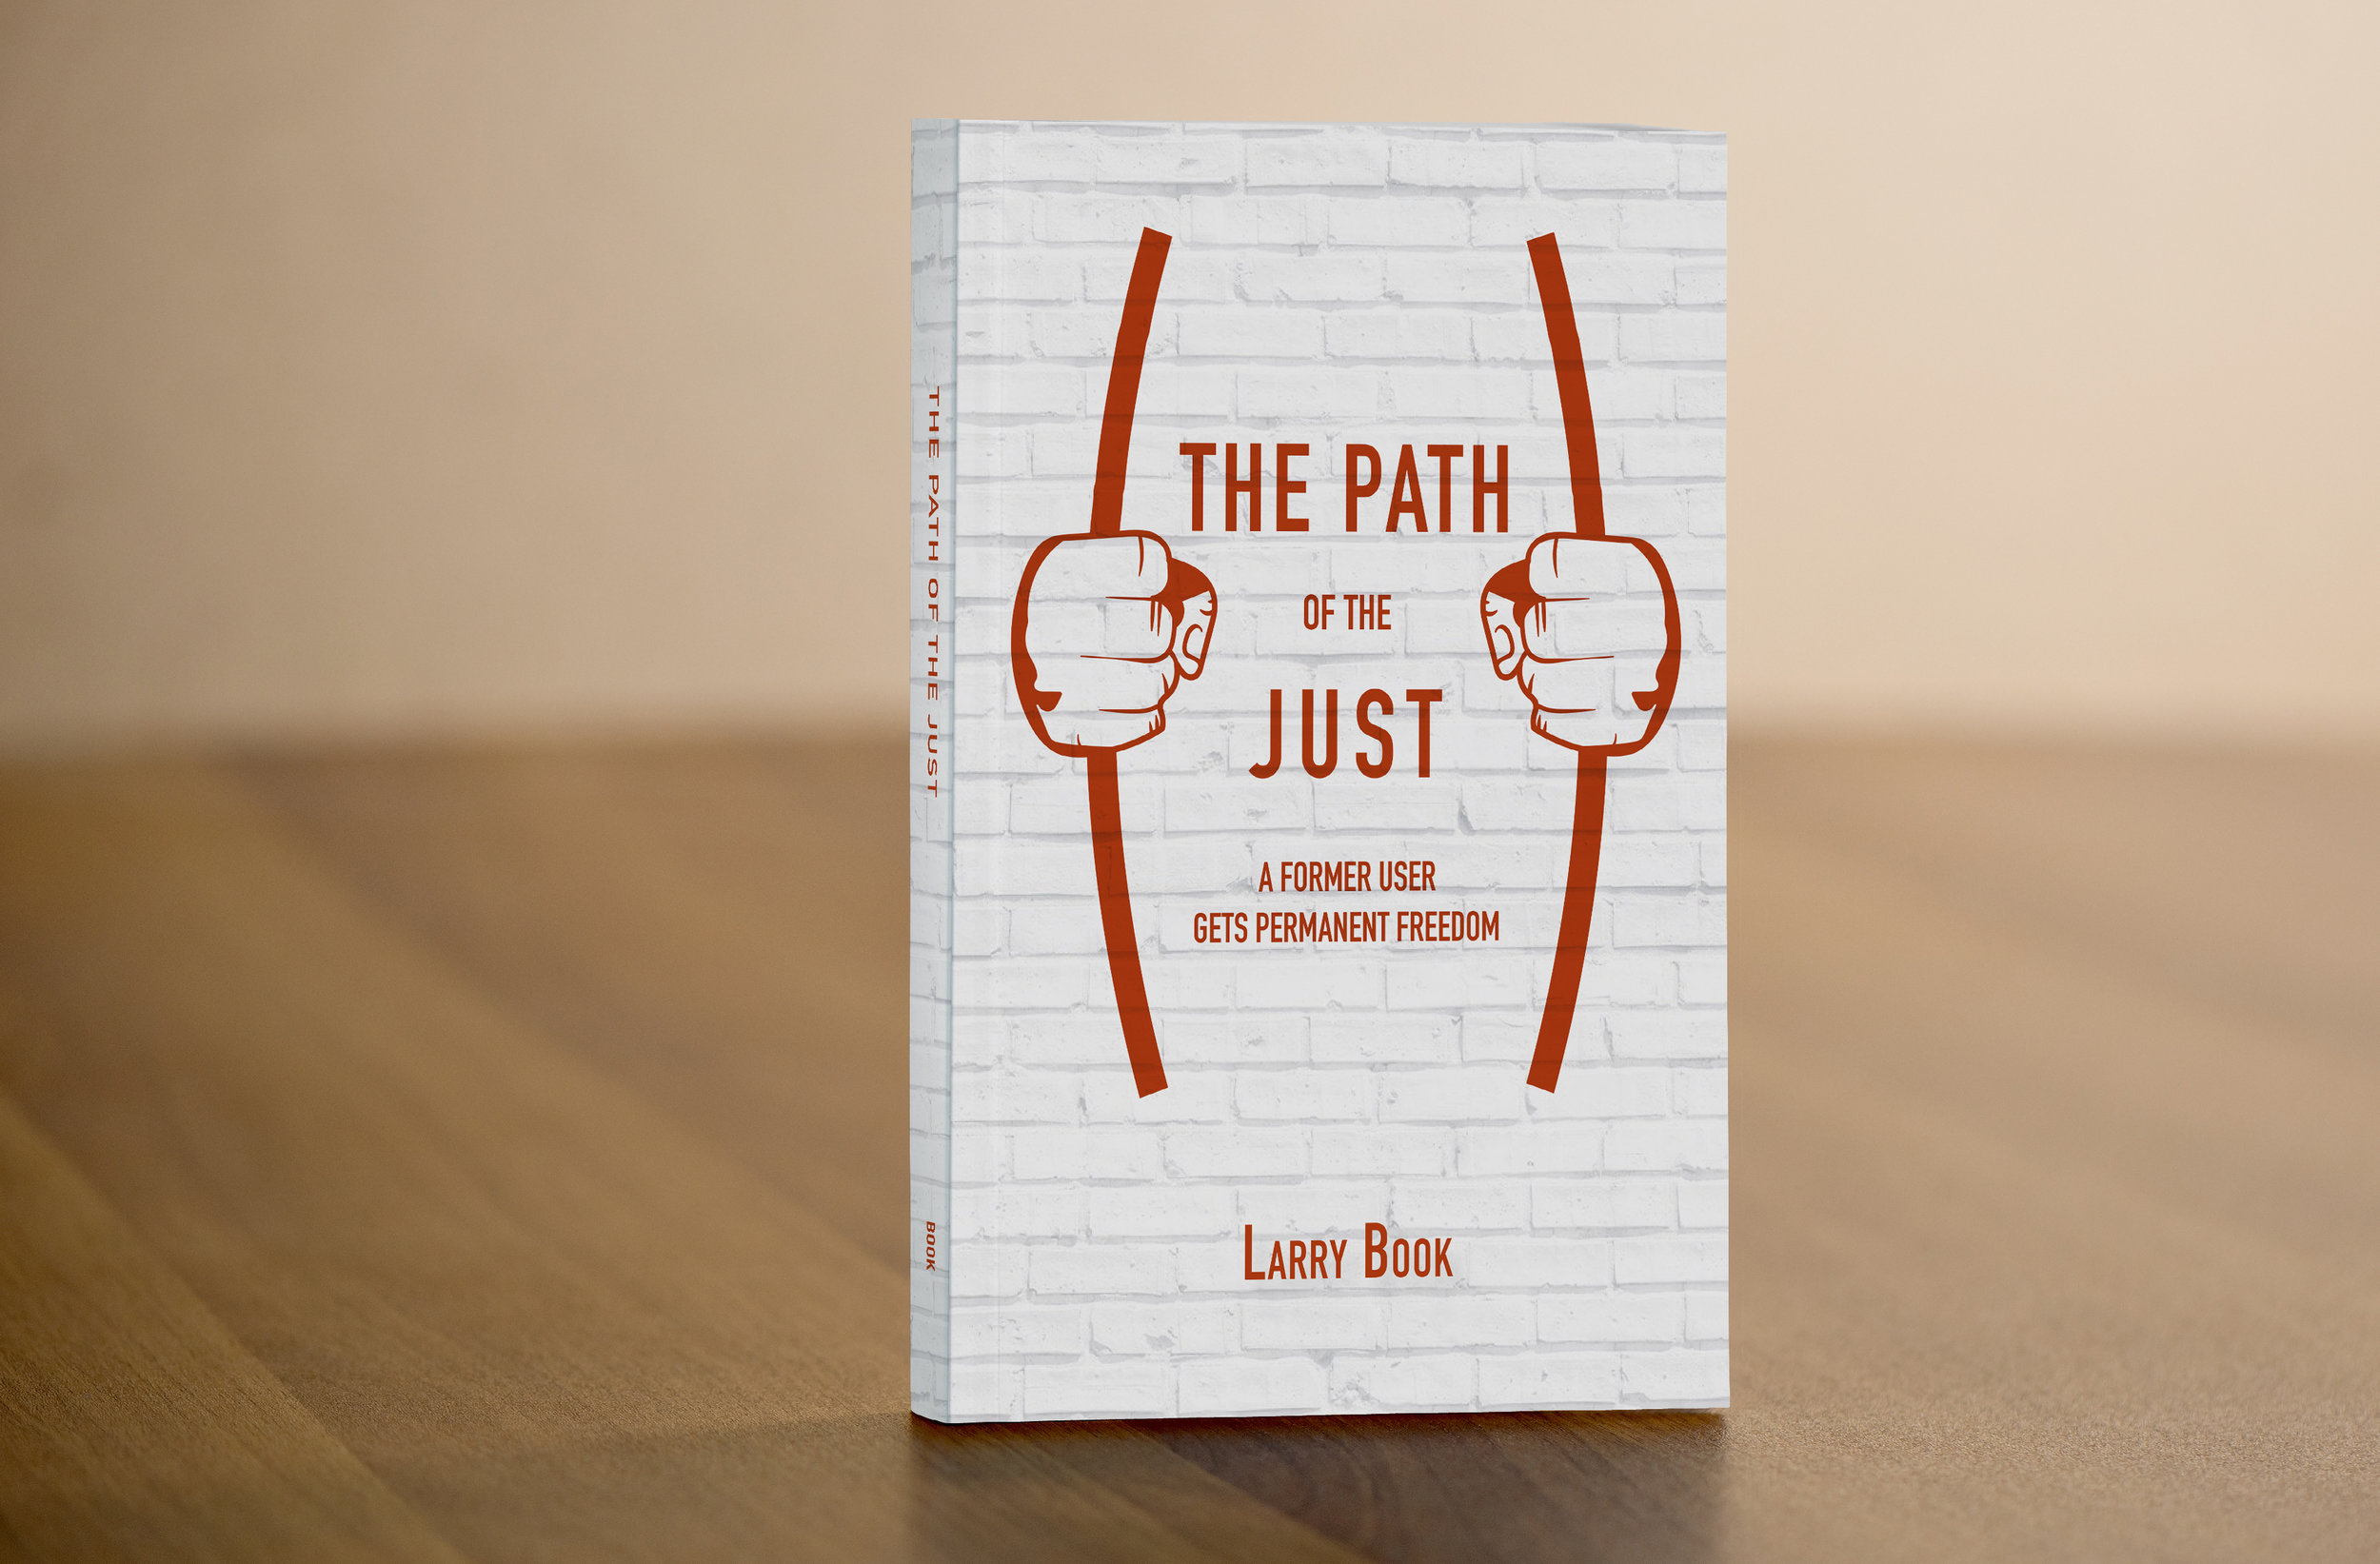 Path Of The Just Soft Cover Mockup.jpg